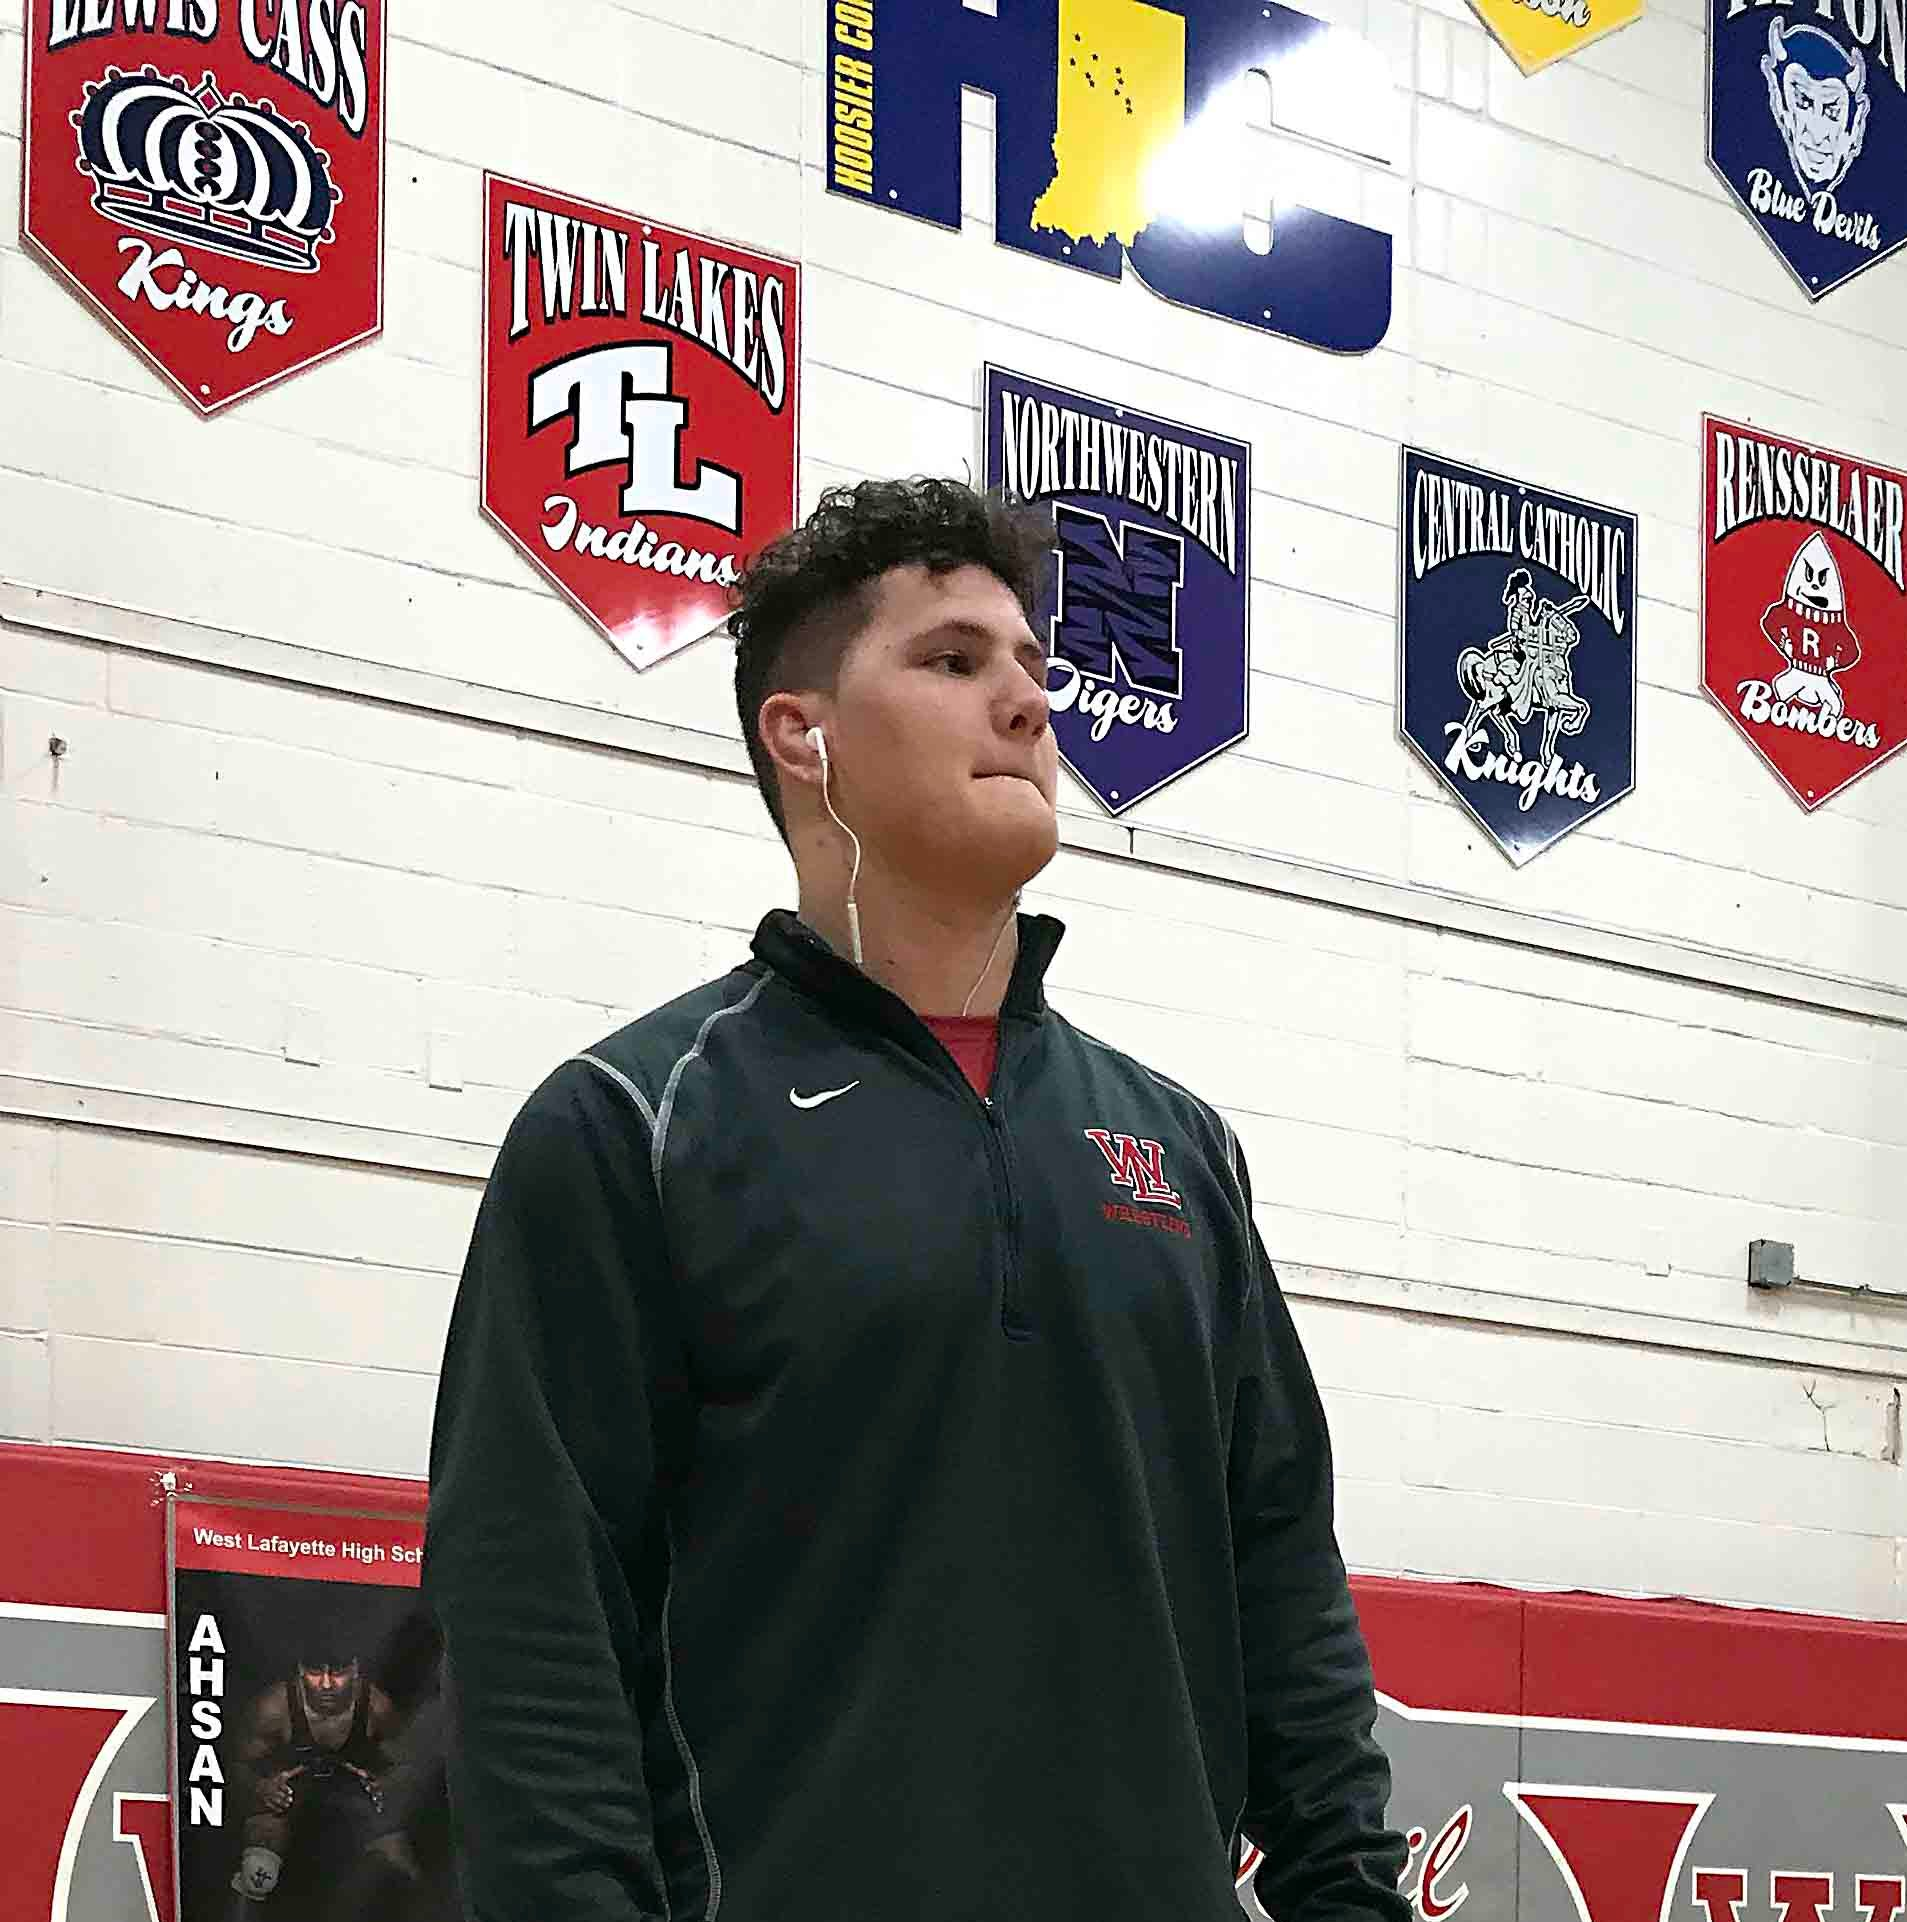 West Lafayette's Joey Kidwell seeks to become school's first state wrestling champ